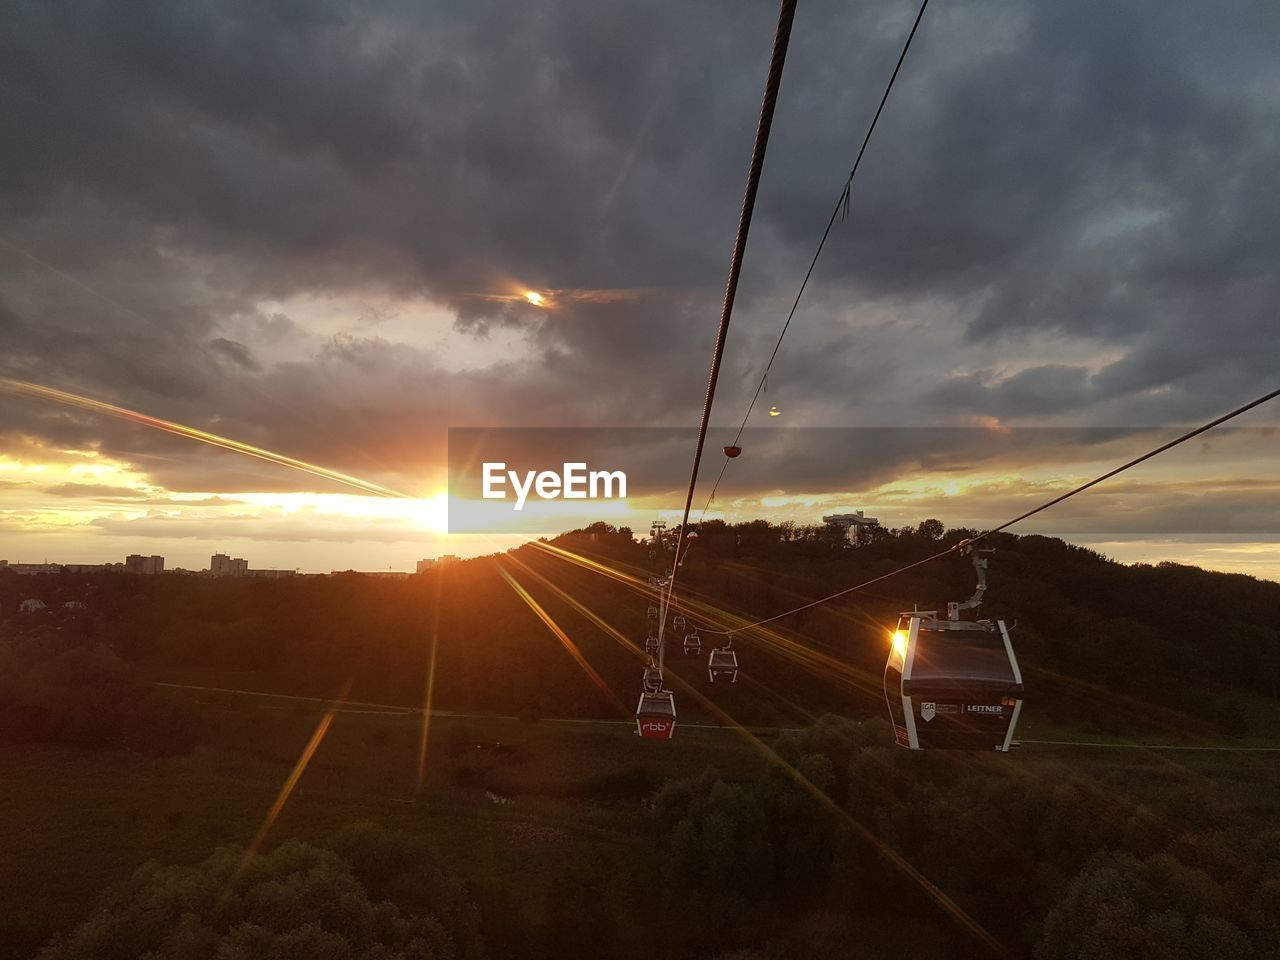 sunset, transportation, sky, cable, cloud - sky, sun, nature, scenics, mode of transport, no people, beauty in nature, connection, outdoors, landscape, sunlight, overhead cable car, travel destinations, technology, storm cloud, telephone line, day